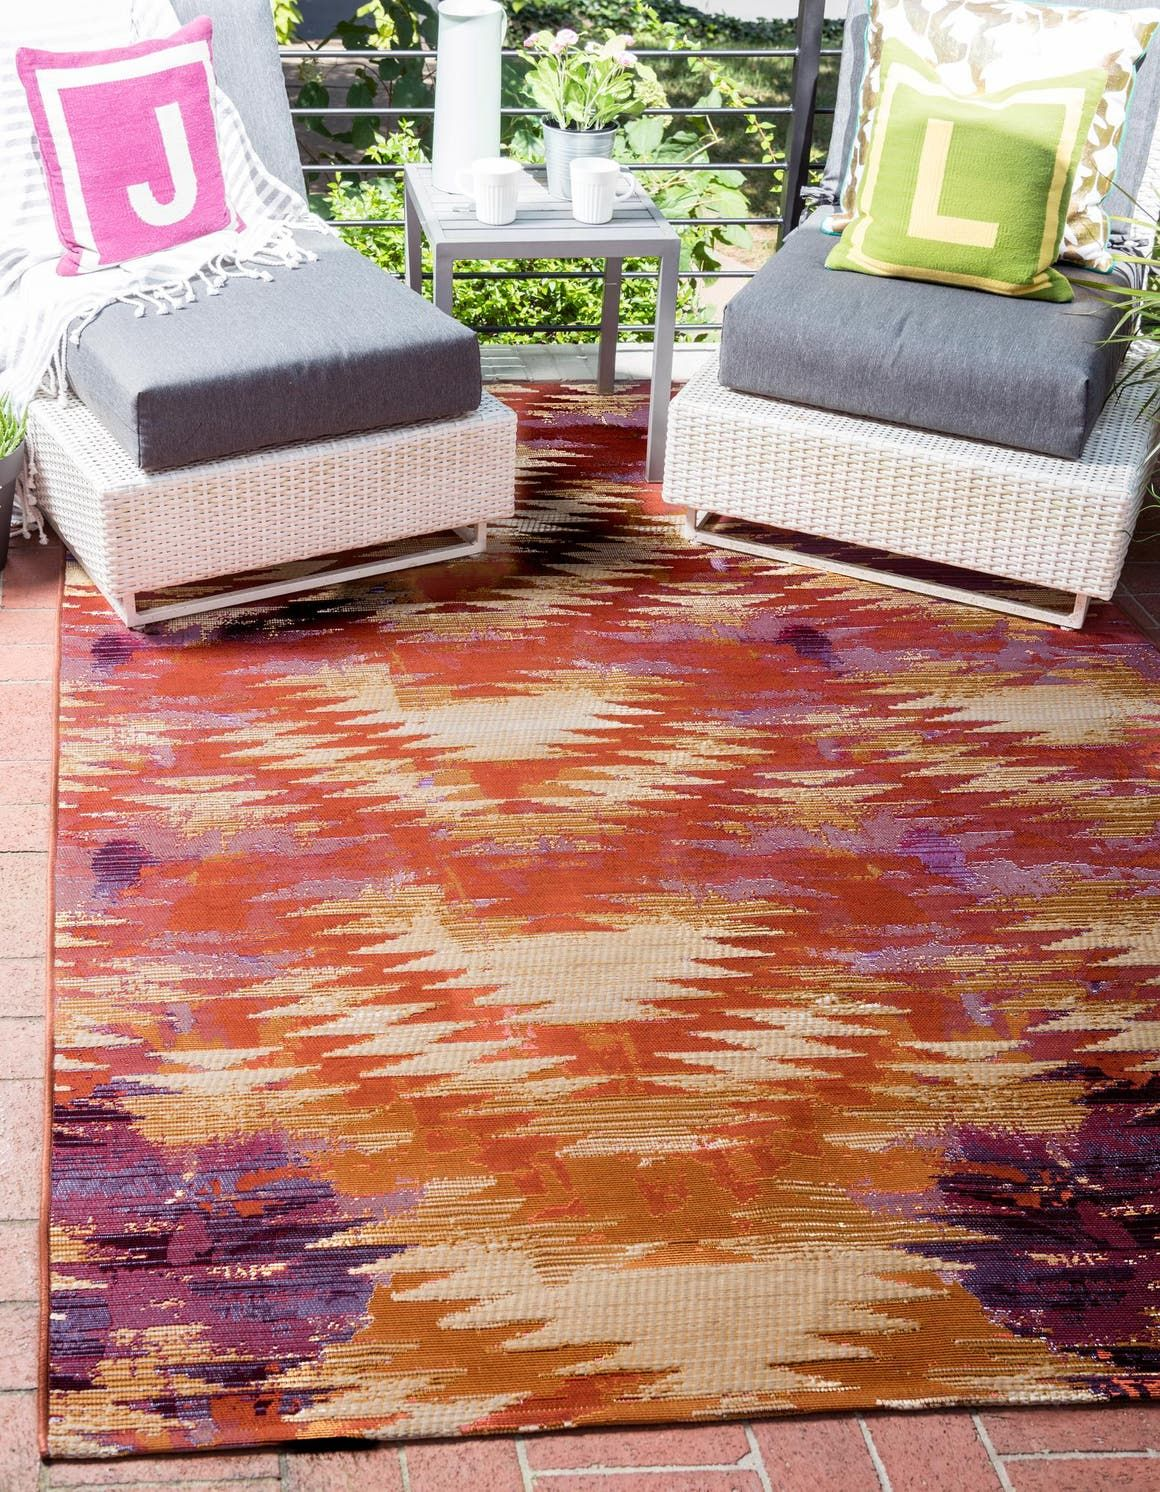 Red Outdoor Modern Area Rug In 2020